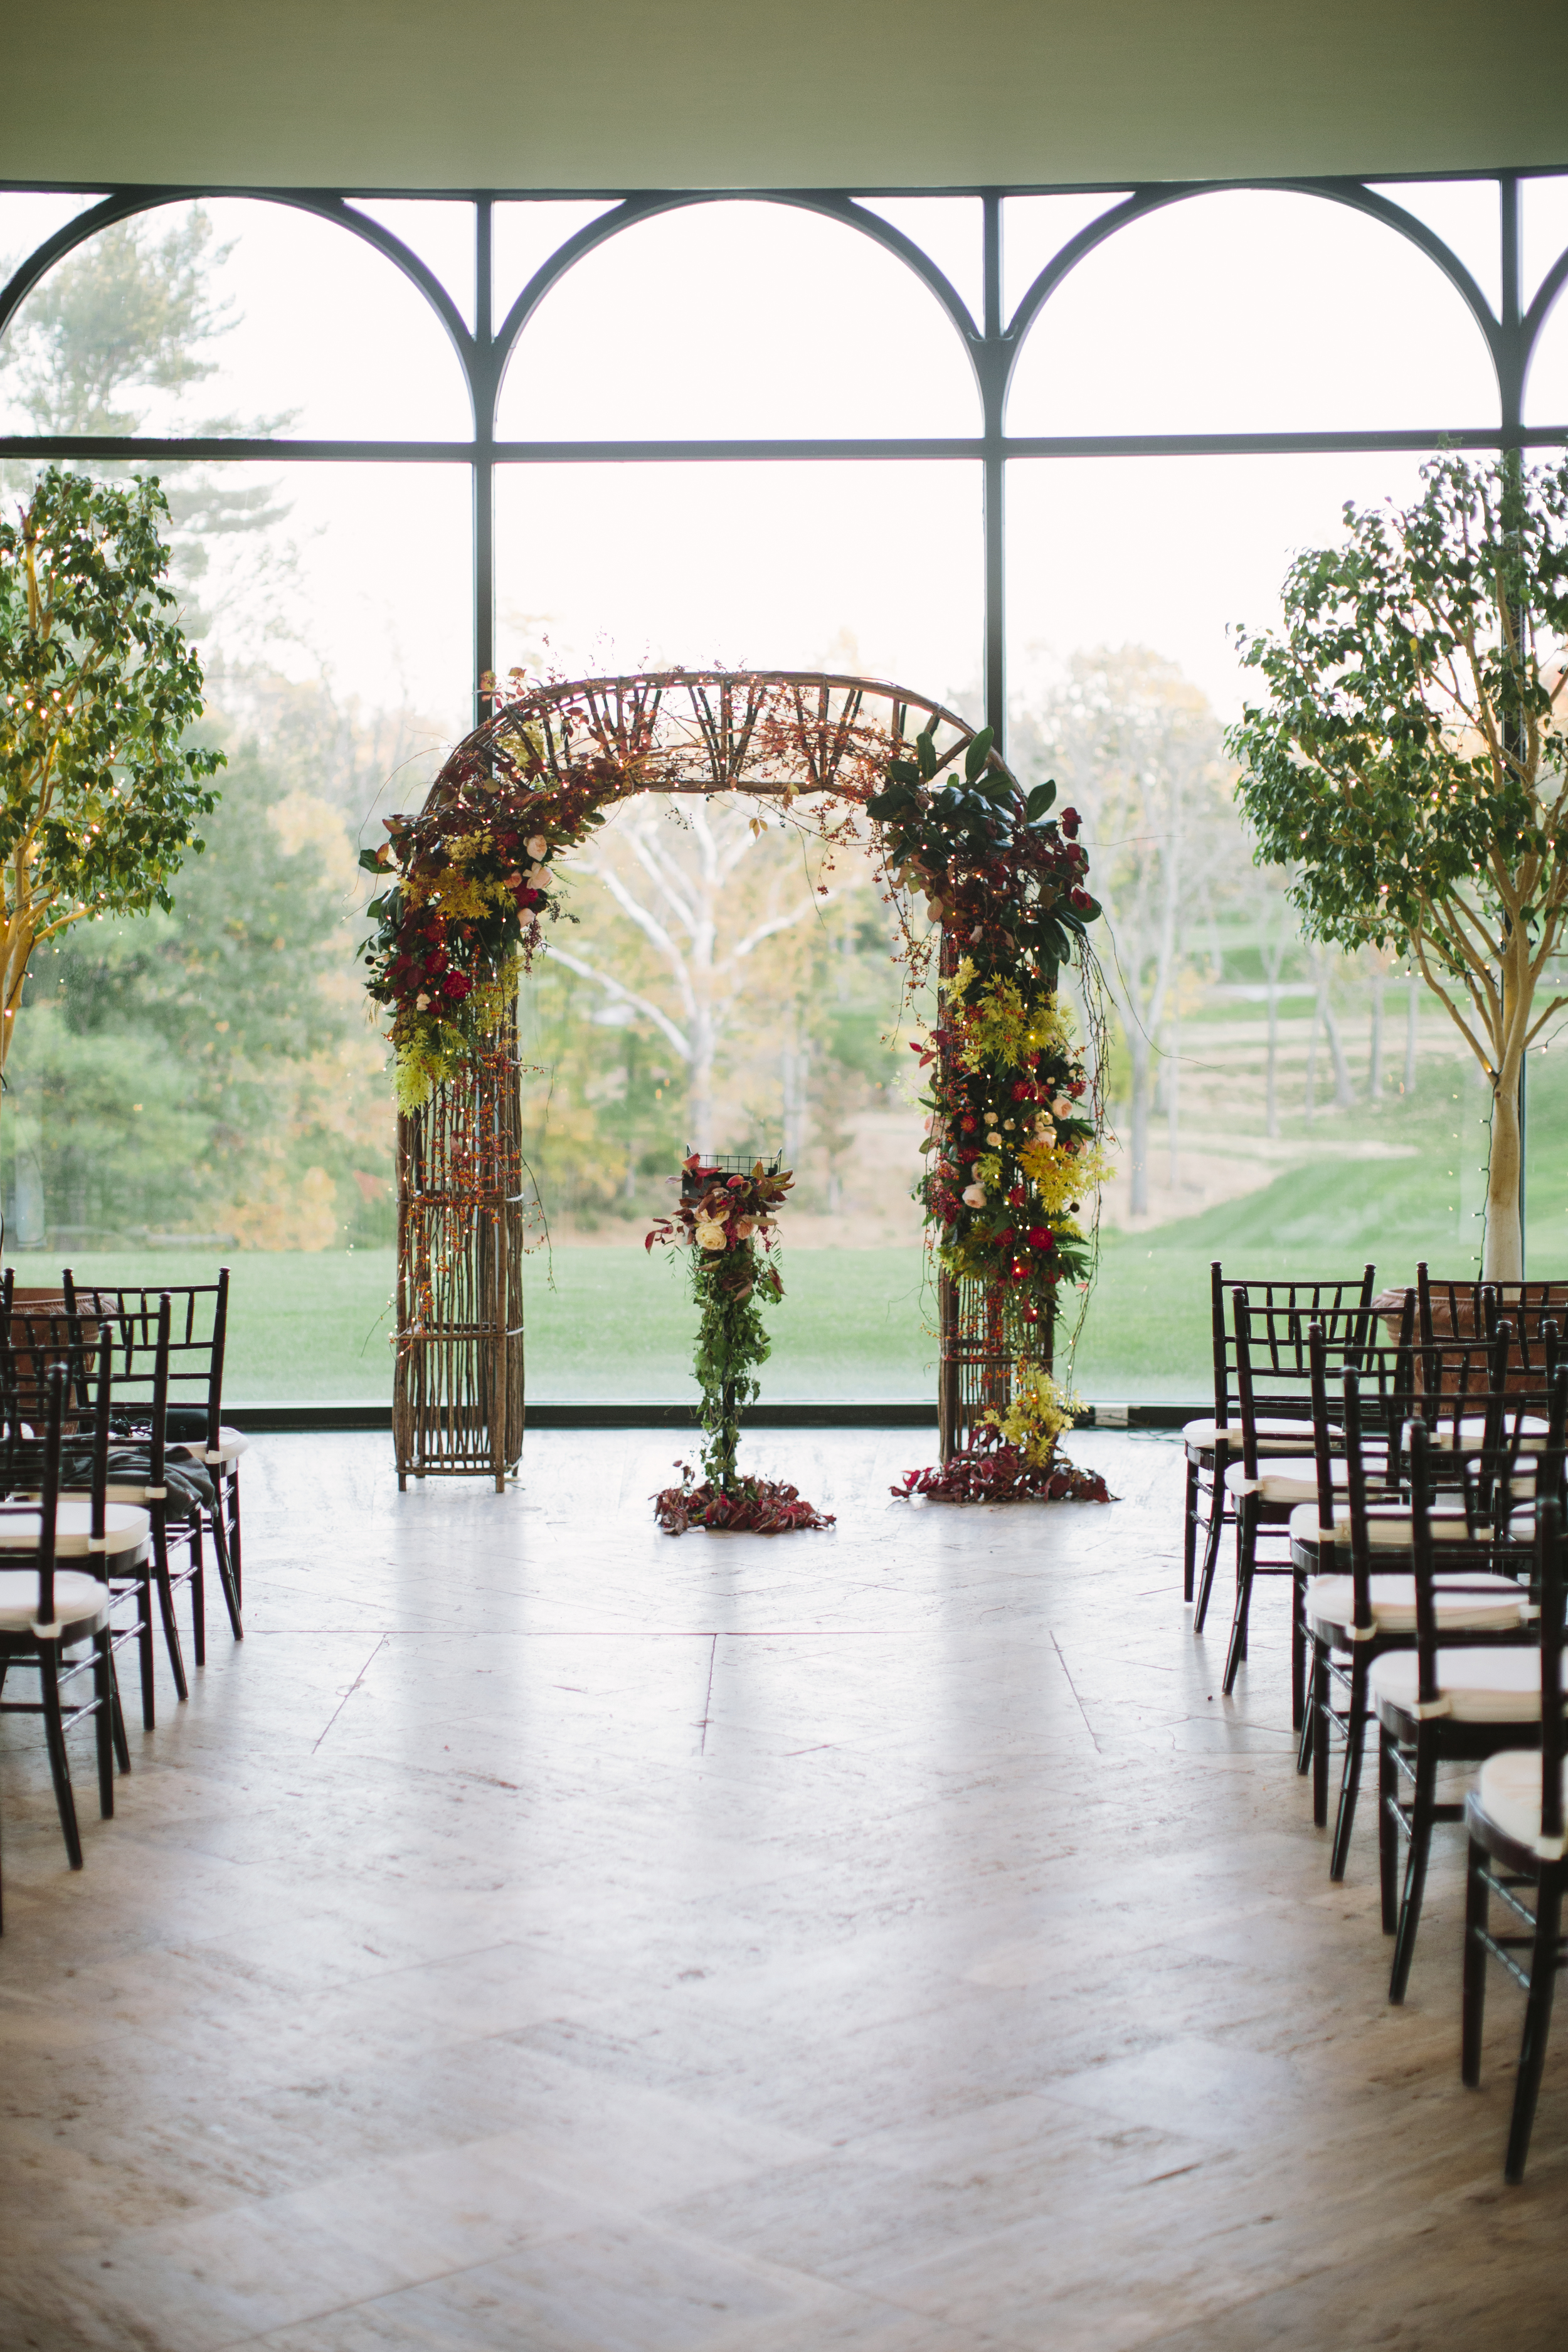 Our  willow arch  was used for the couple's ceremony, and we were giddy to be able to design with Emily's vision. Our bride wanted wild and gardeny florals, and strands of fairy lights really brought it to life. We wanted this arch to be an extension of nature's fall performance, and are so happy with how it turned out. At the last minute, a podium was added, and it served as a great excuse to create a central point to the design with vines winding their way up and down the stand.